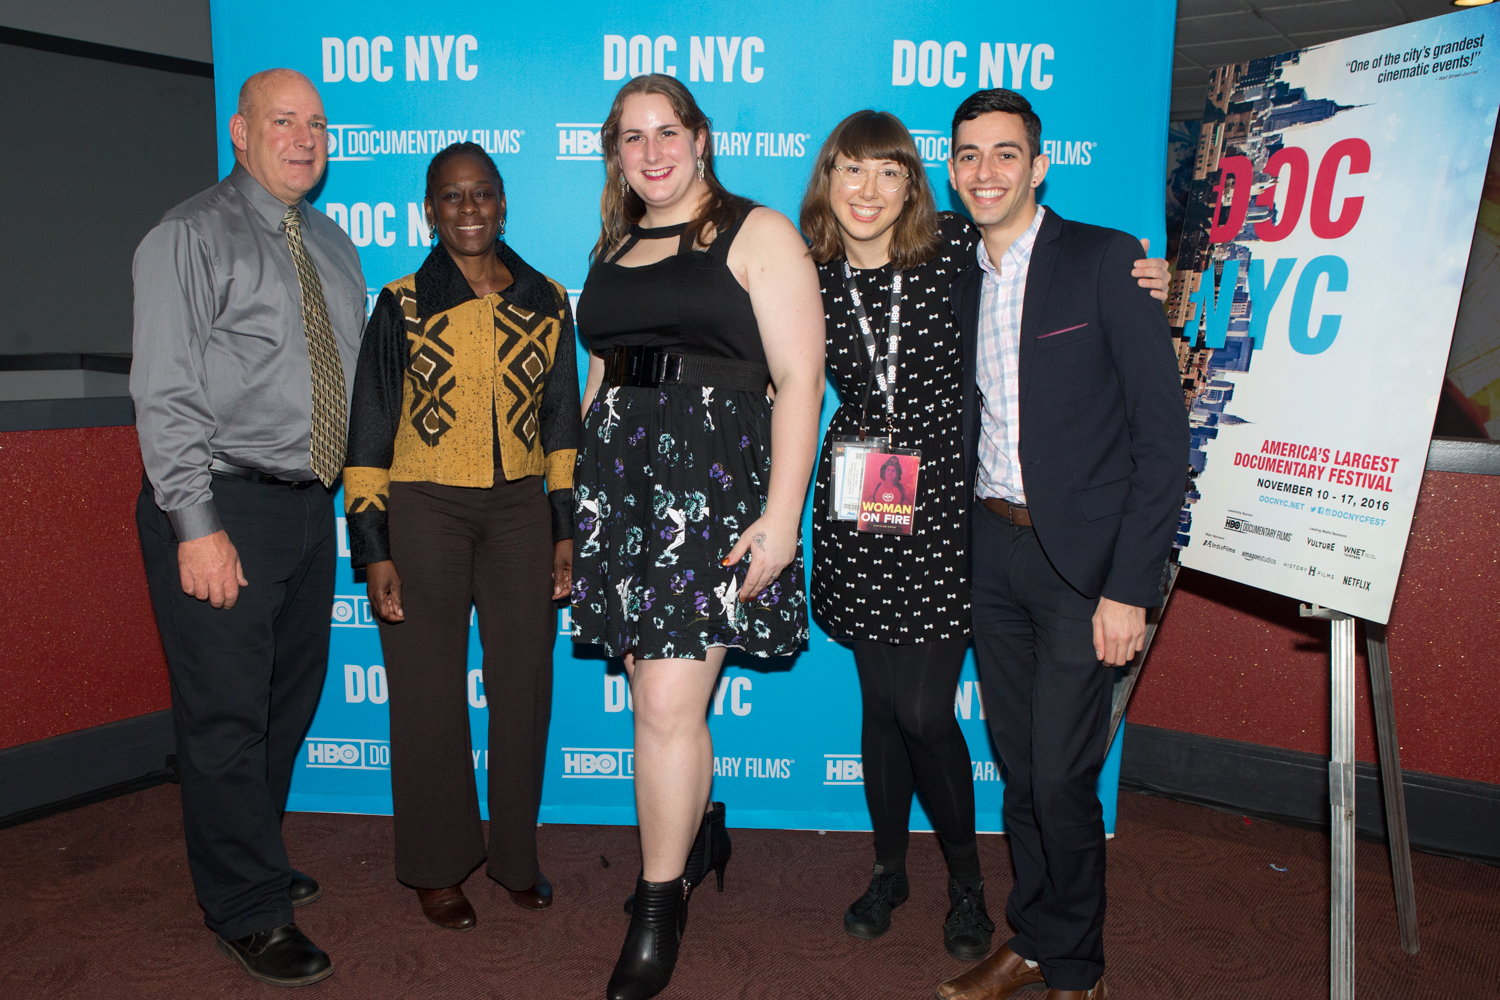 Filmmaker and Subjects Celebrate the world premiere of Woman on Fire at DOC NYC with NY's First Lady Chirlane McCray.